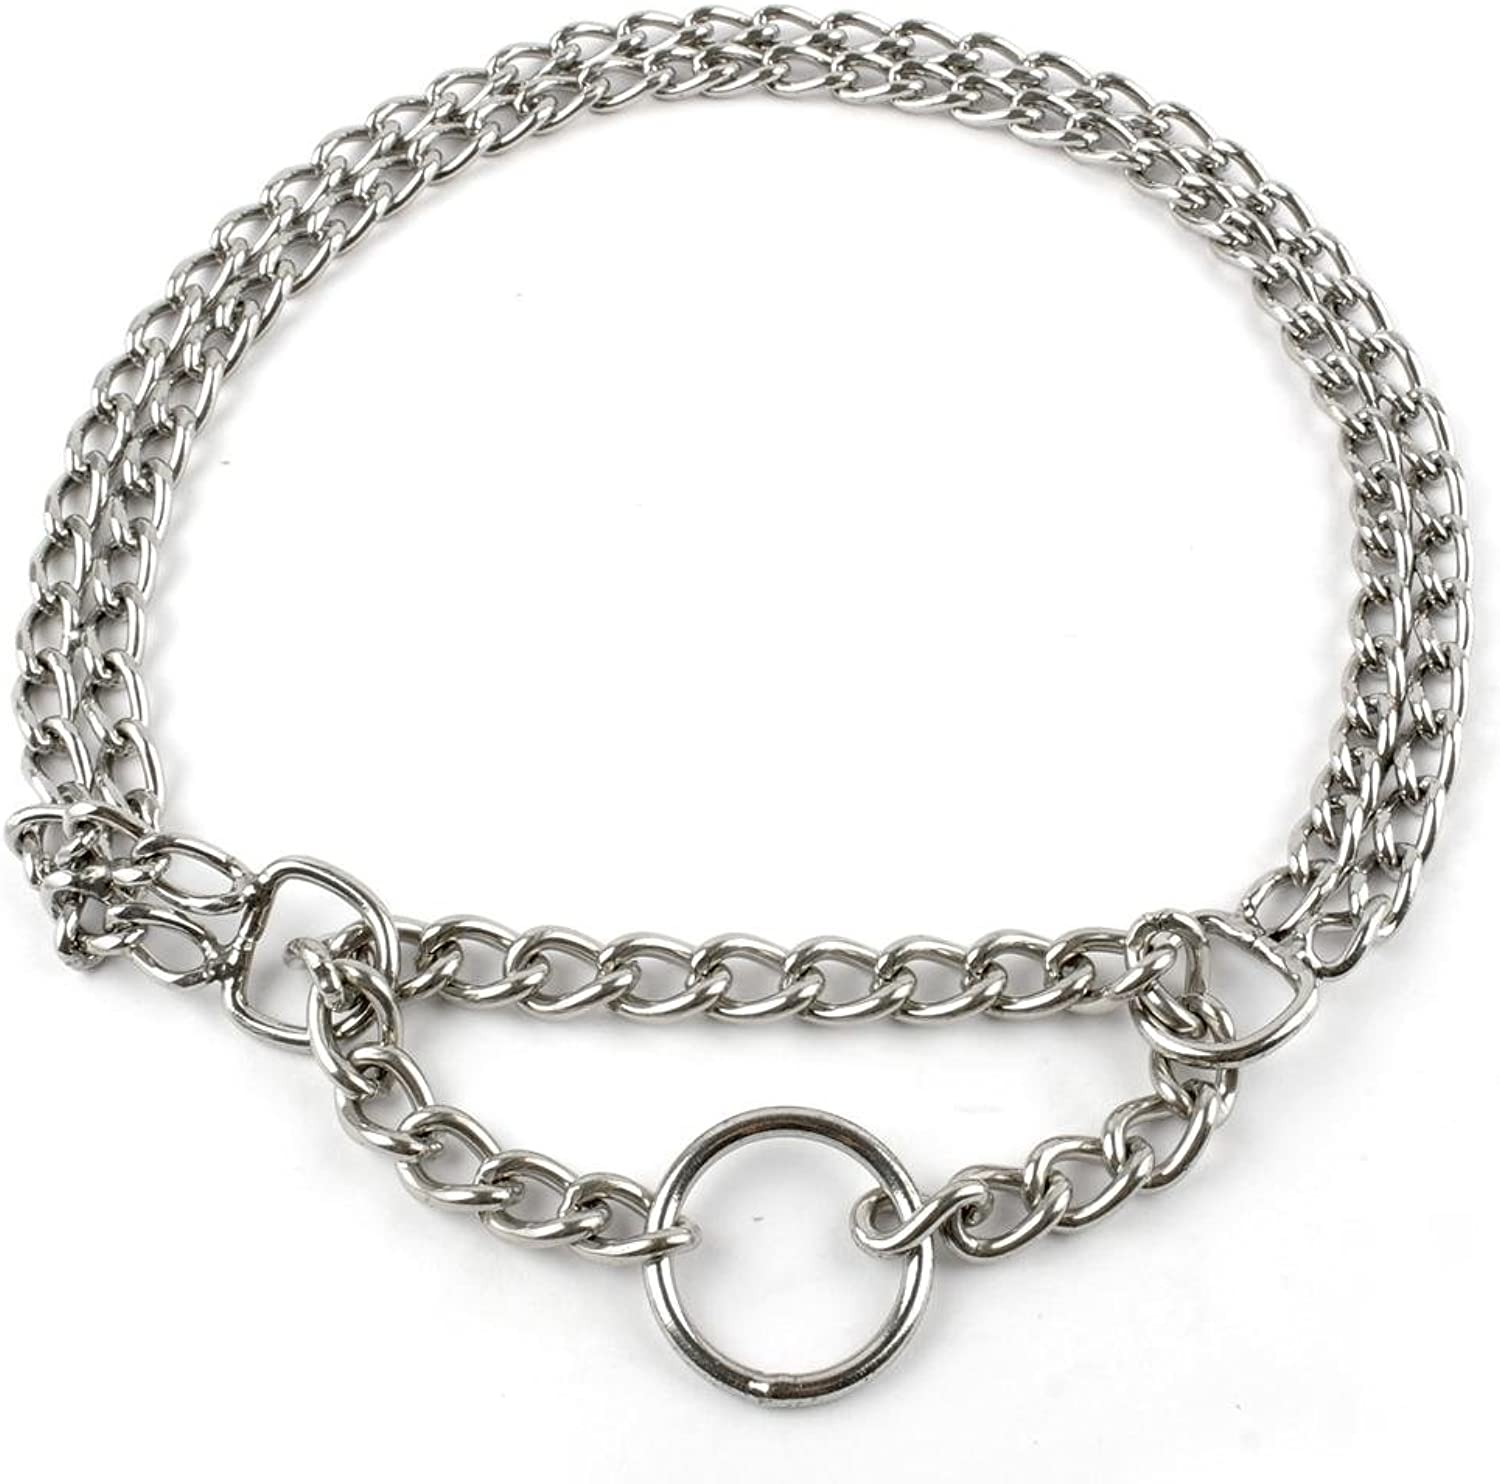 Negly(TM) Metal Stainless Steel Chain Dog Collar Double Row Chrome Plated Choke Training Show Collar Adjustable Safety Control 5 Sizes